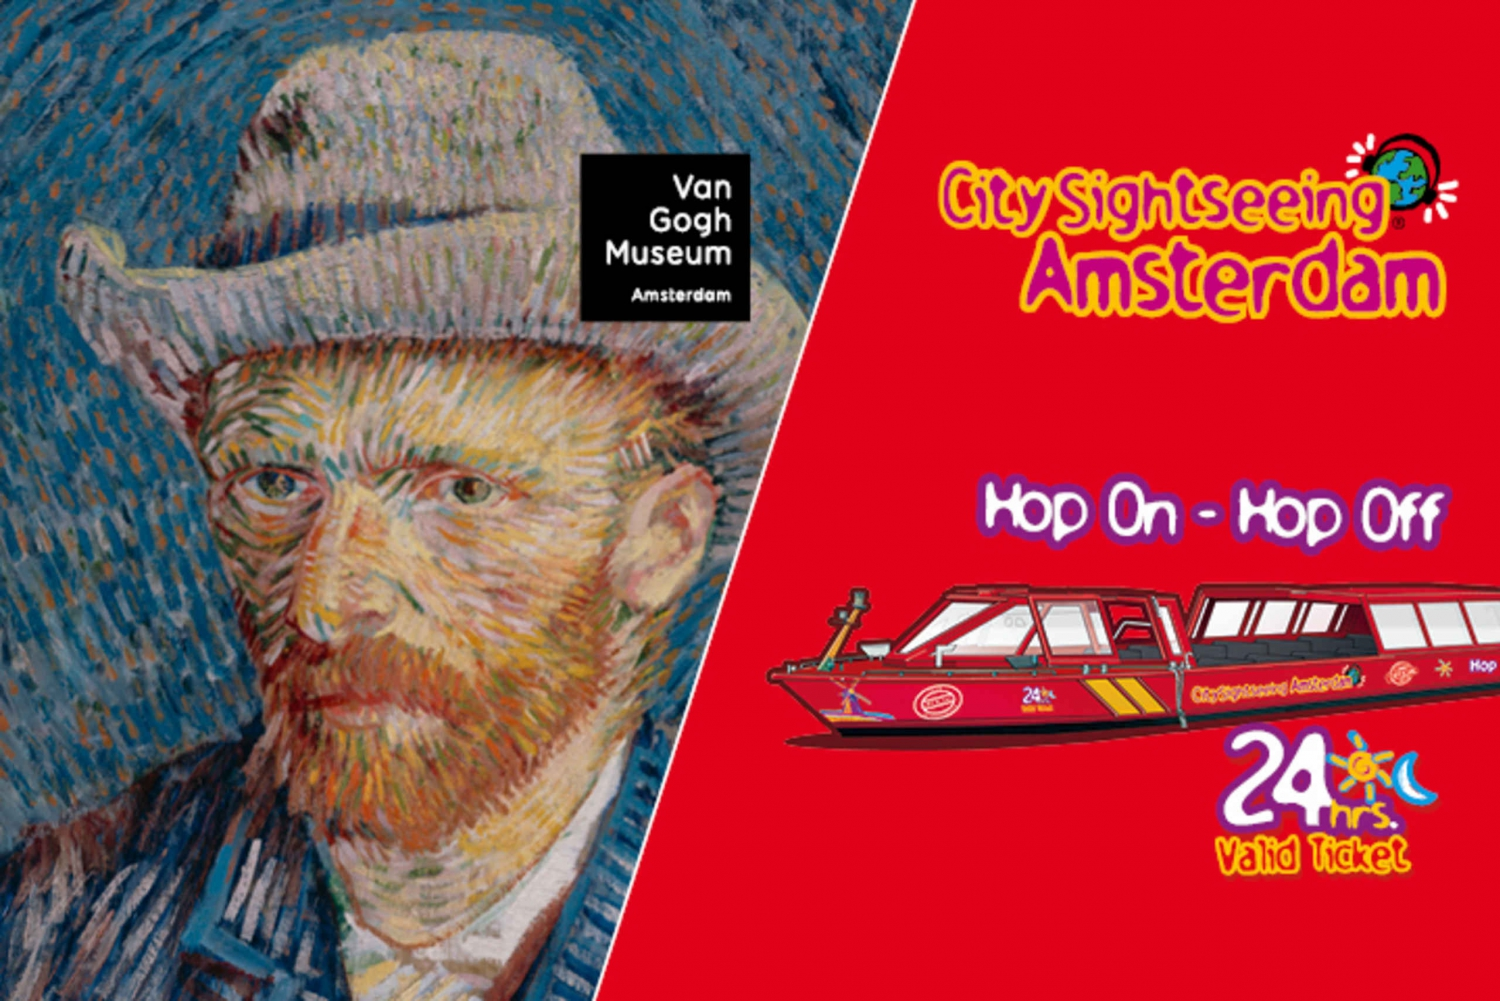 Amsterdam Hop-On Hop-Off Canal Cruise and Van Gogh Museum